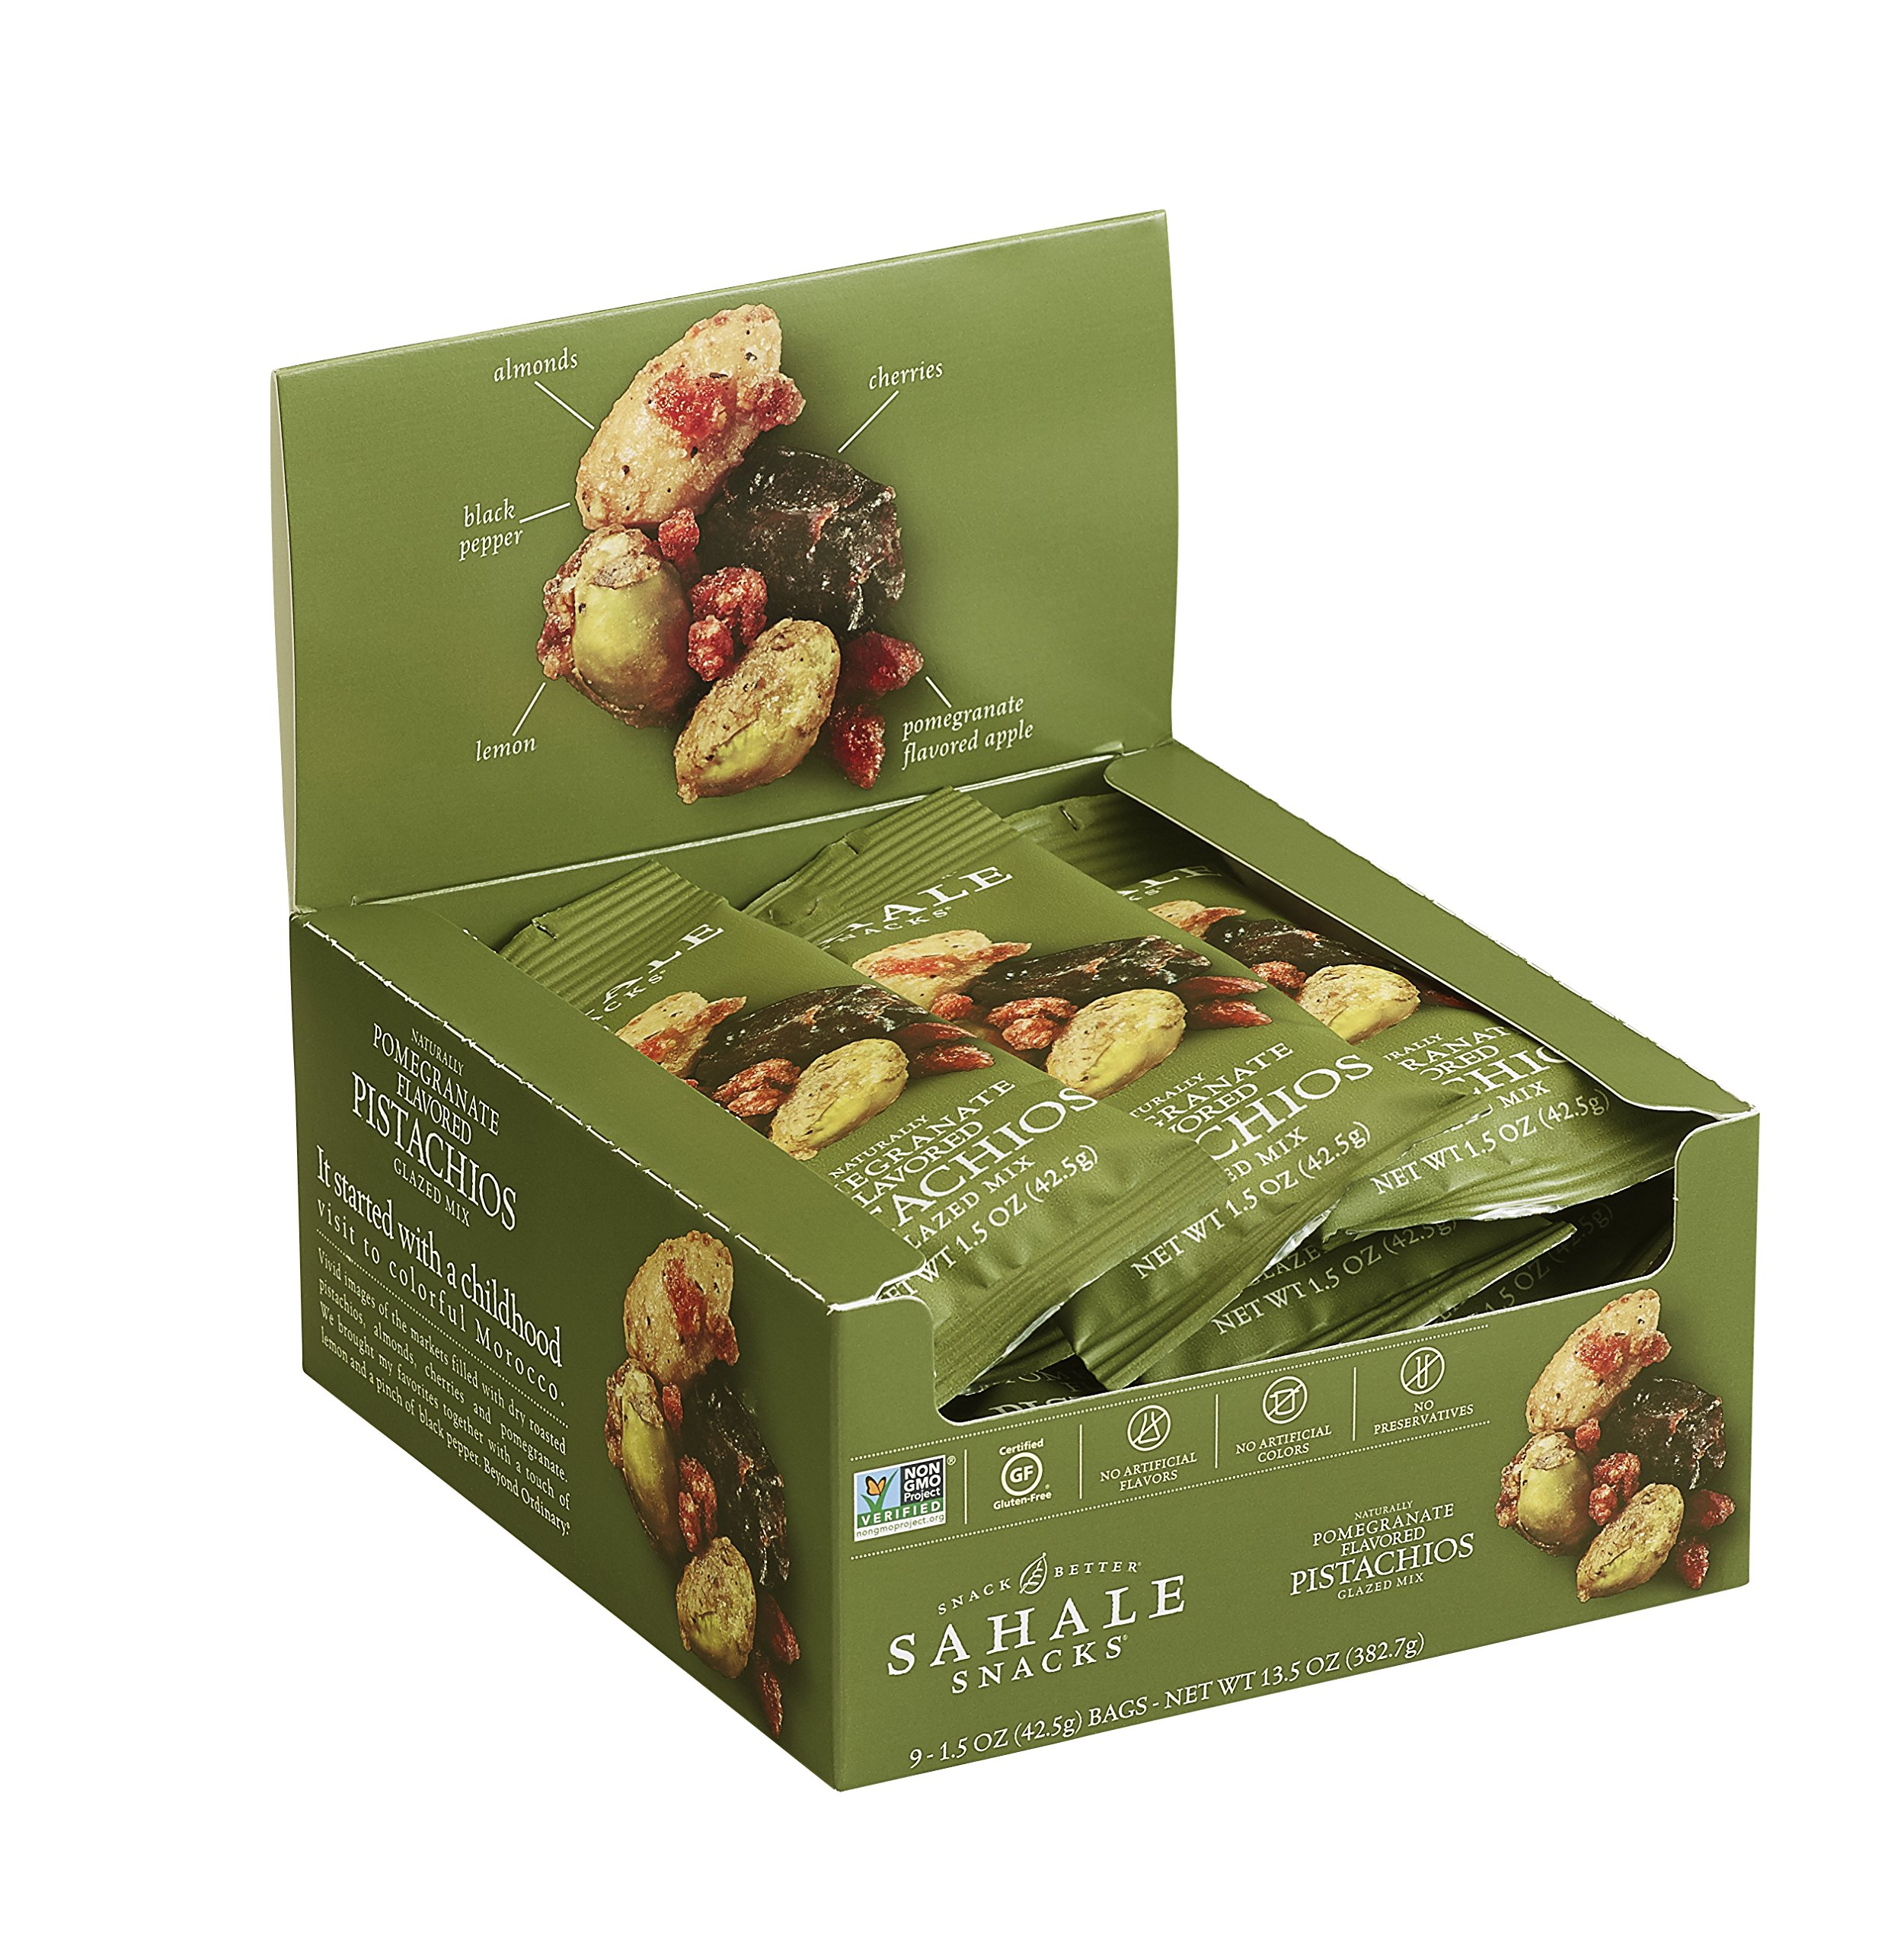 Sahale Snacks Grab & Go Naturally Flavored Pistachios Glazed Mix, Gluten-Free Snack, Pomegranate, 1.5 Ounce